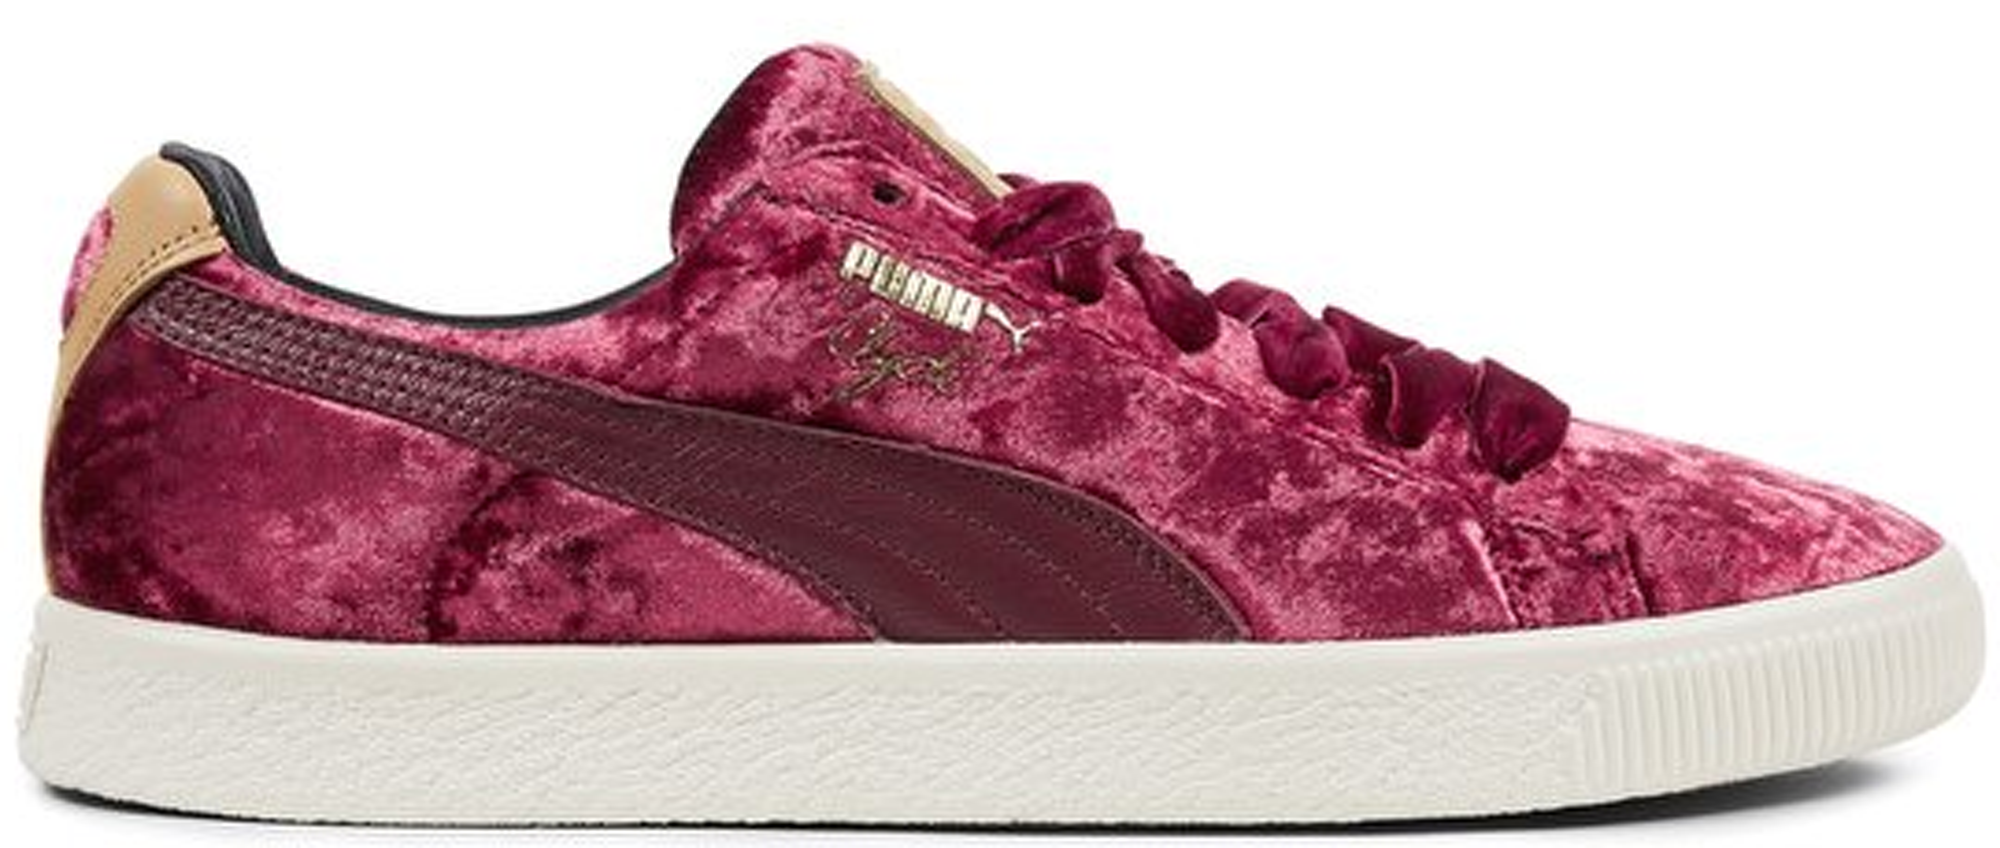 Puma Clyde Extra Butter Kings of New York Cabernet